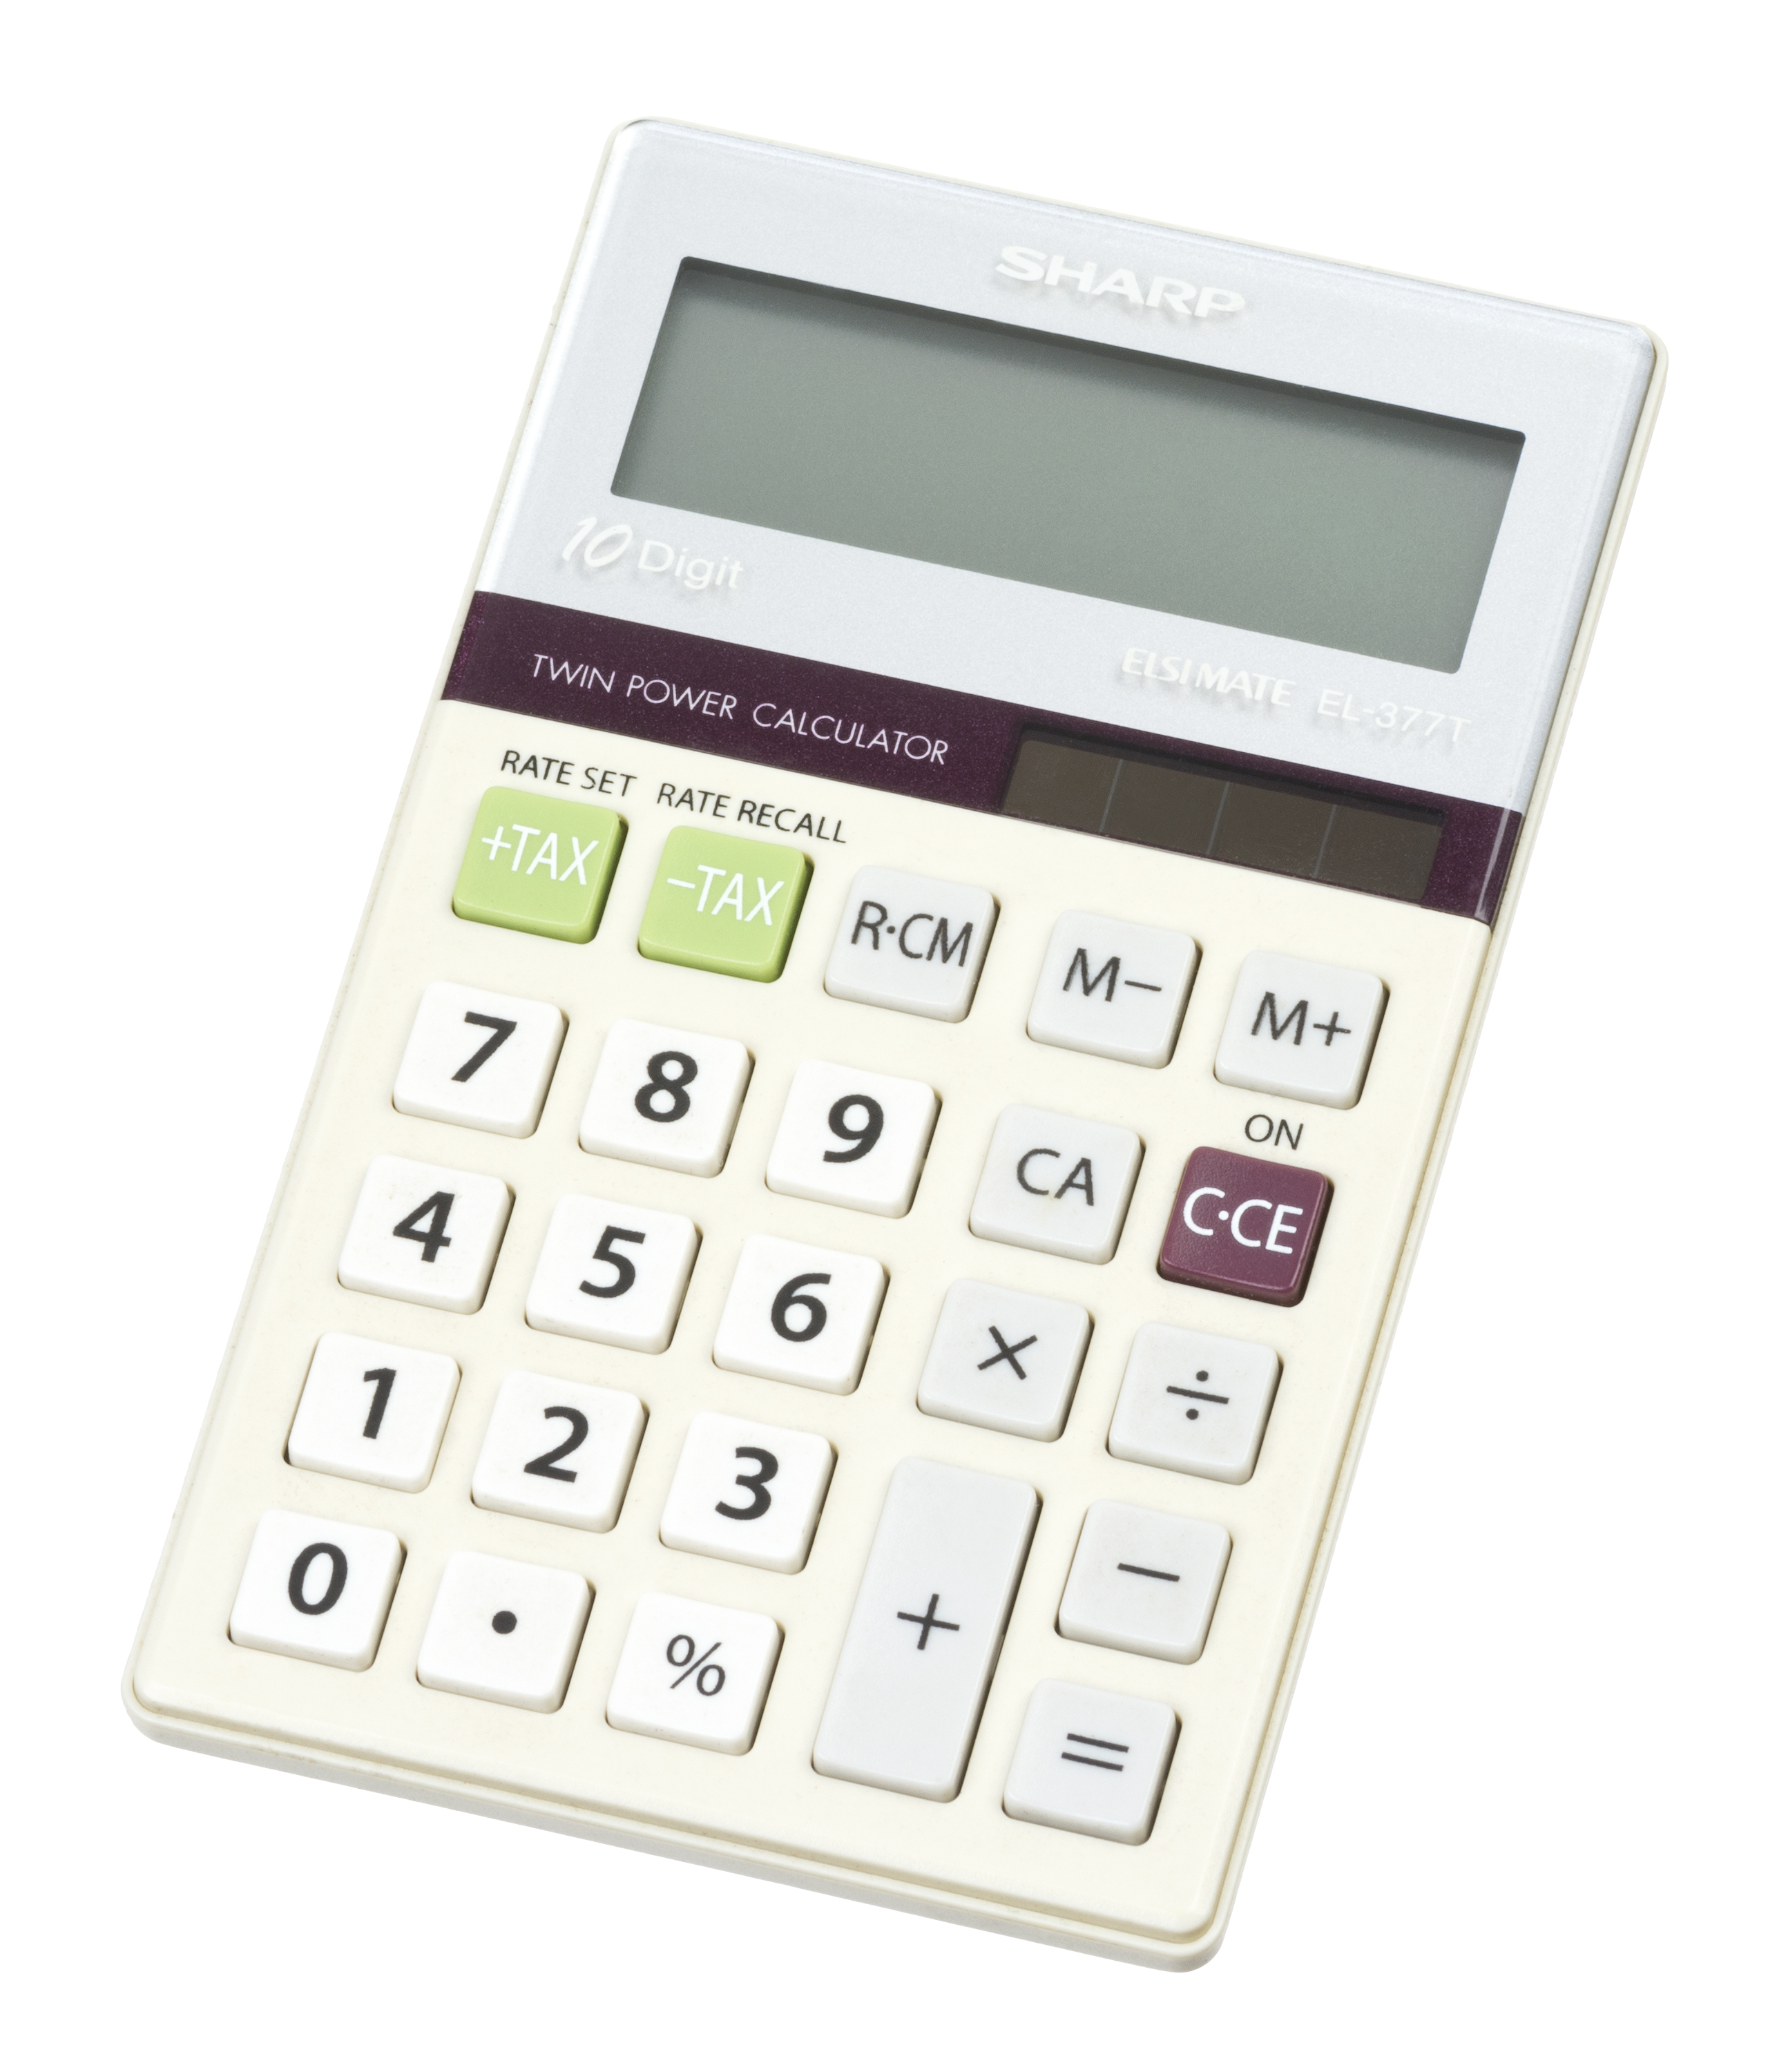 A calculator which runs on solar and battery power.